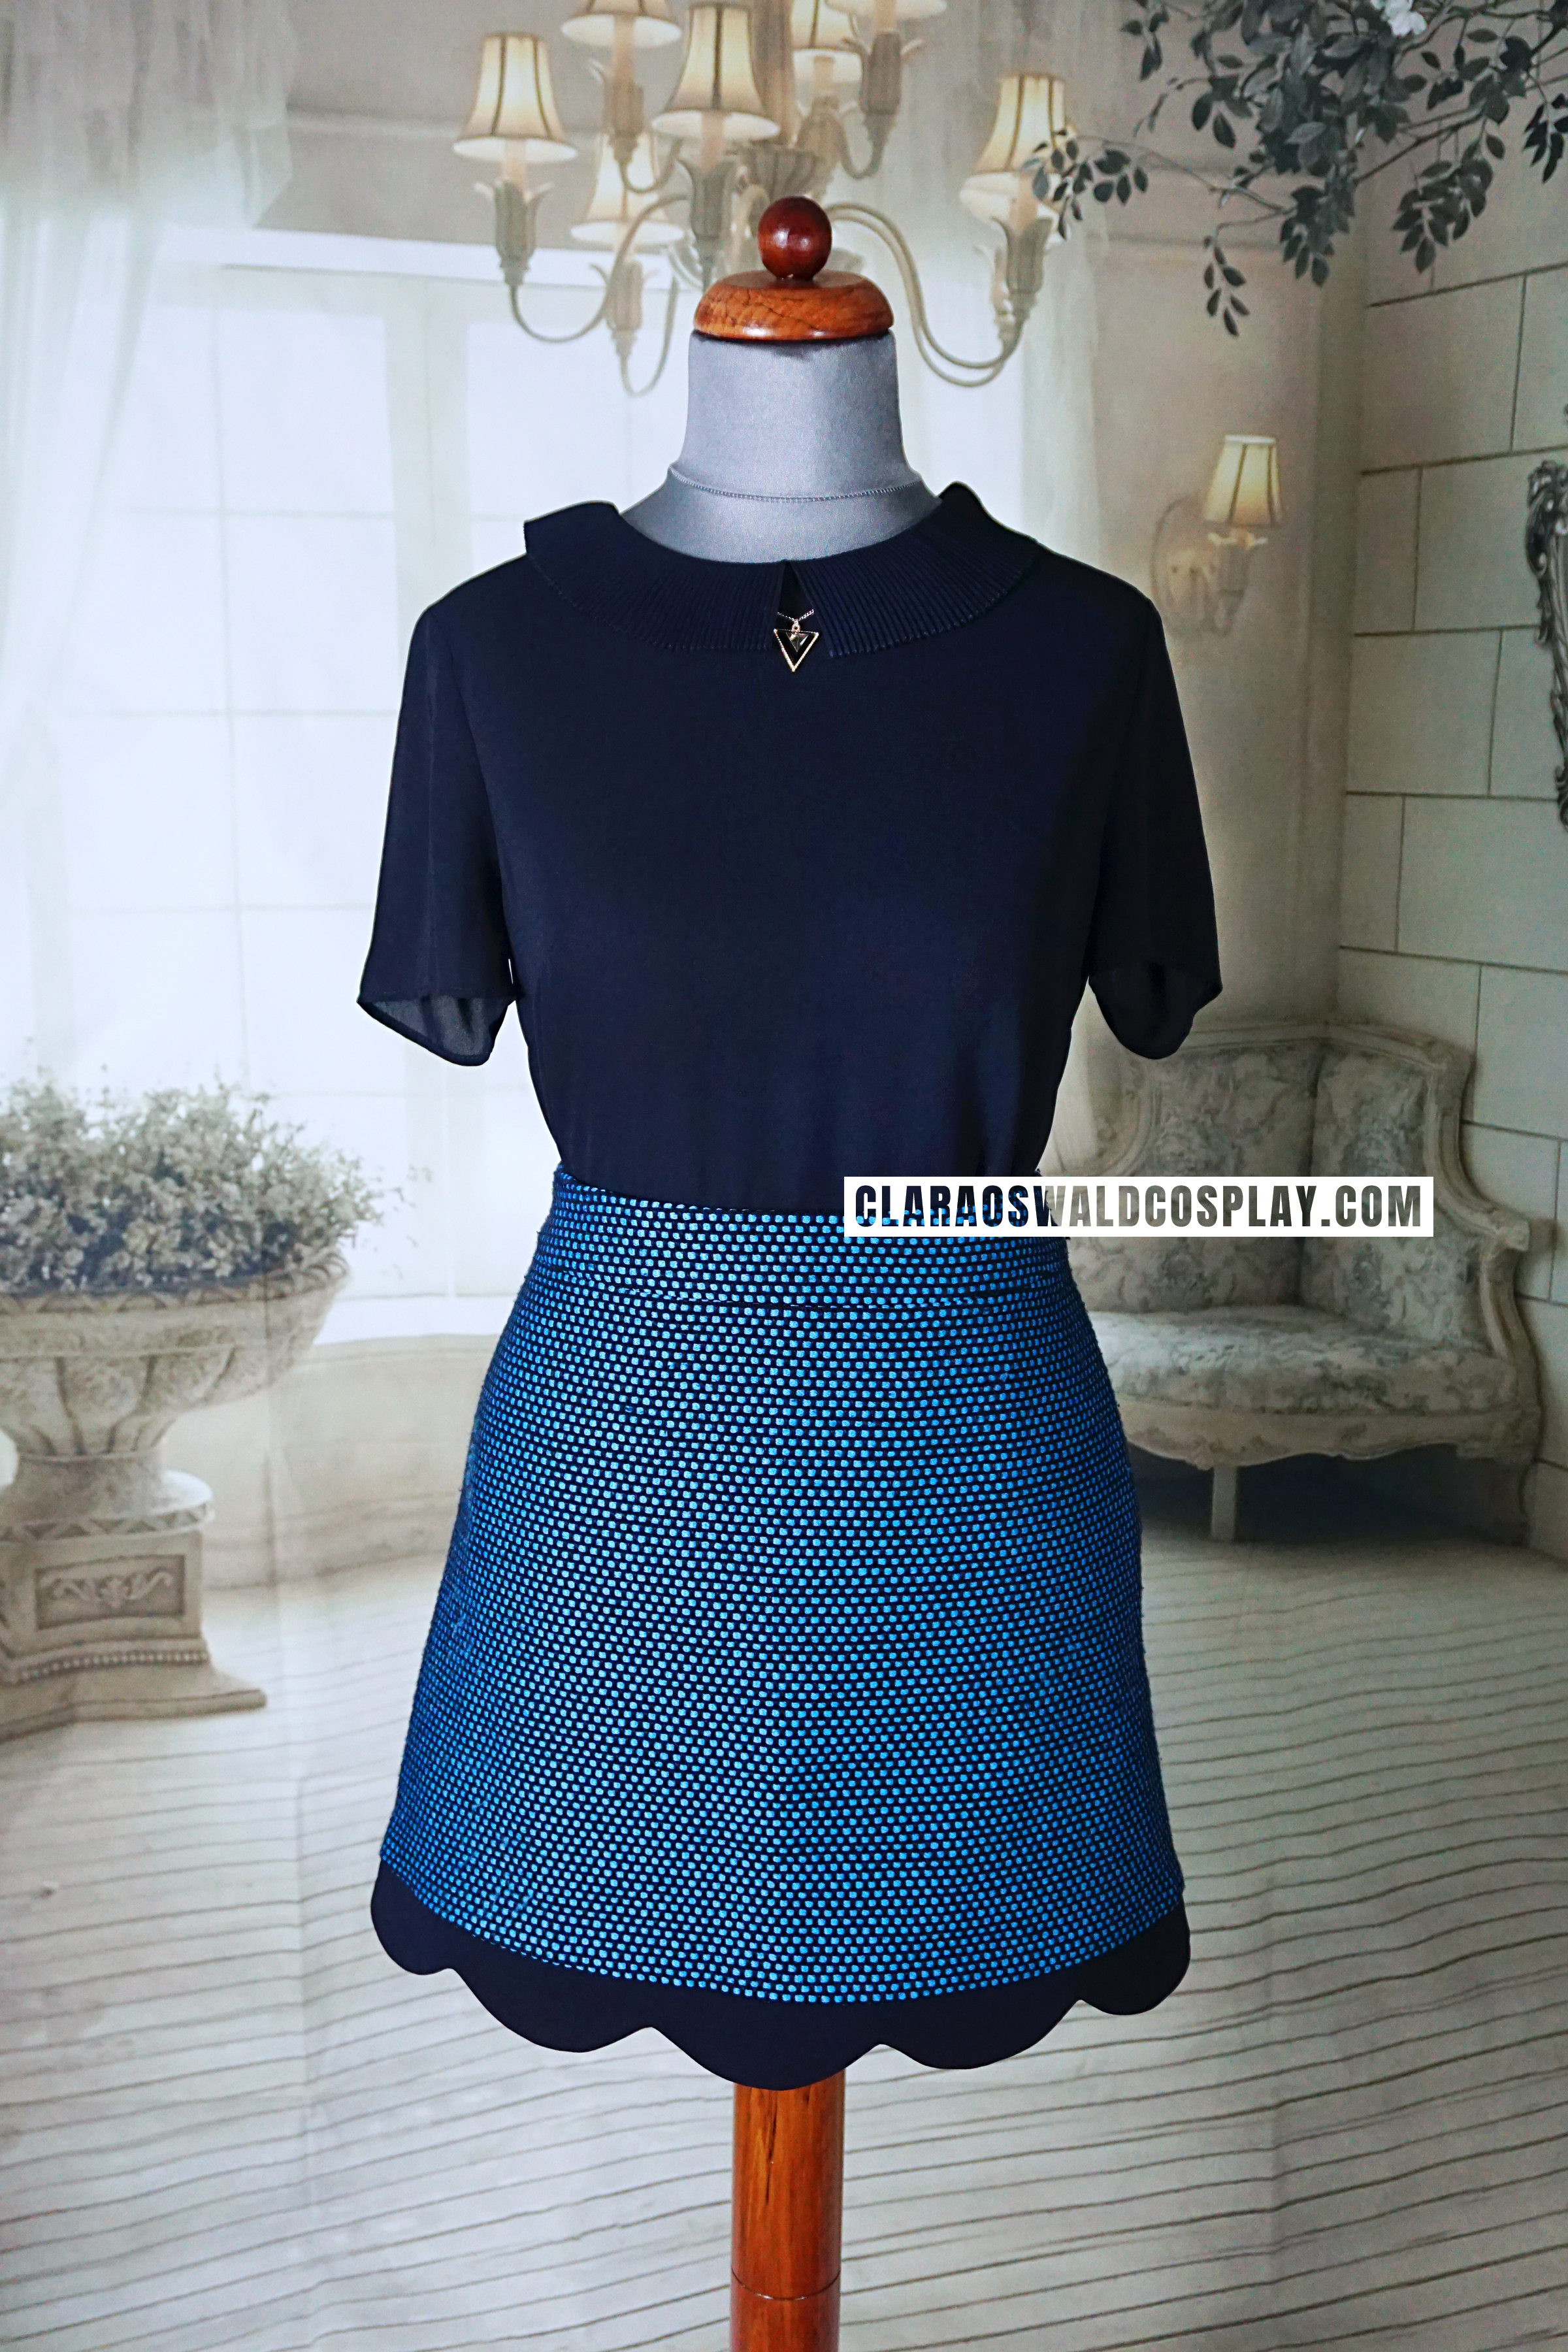 Clara Oswald's Sleep No More / Radio Times Photoshoot outfit with the Claudie Pierlot Soline Skirt and Brooklyn Top